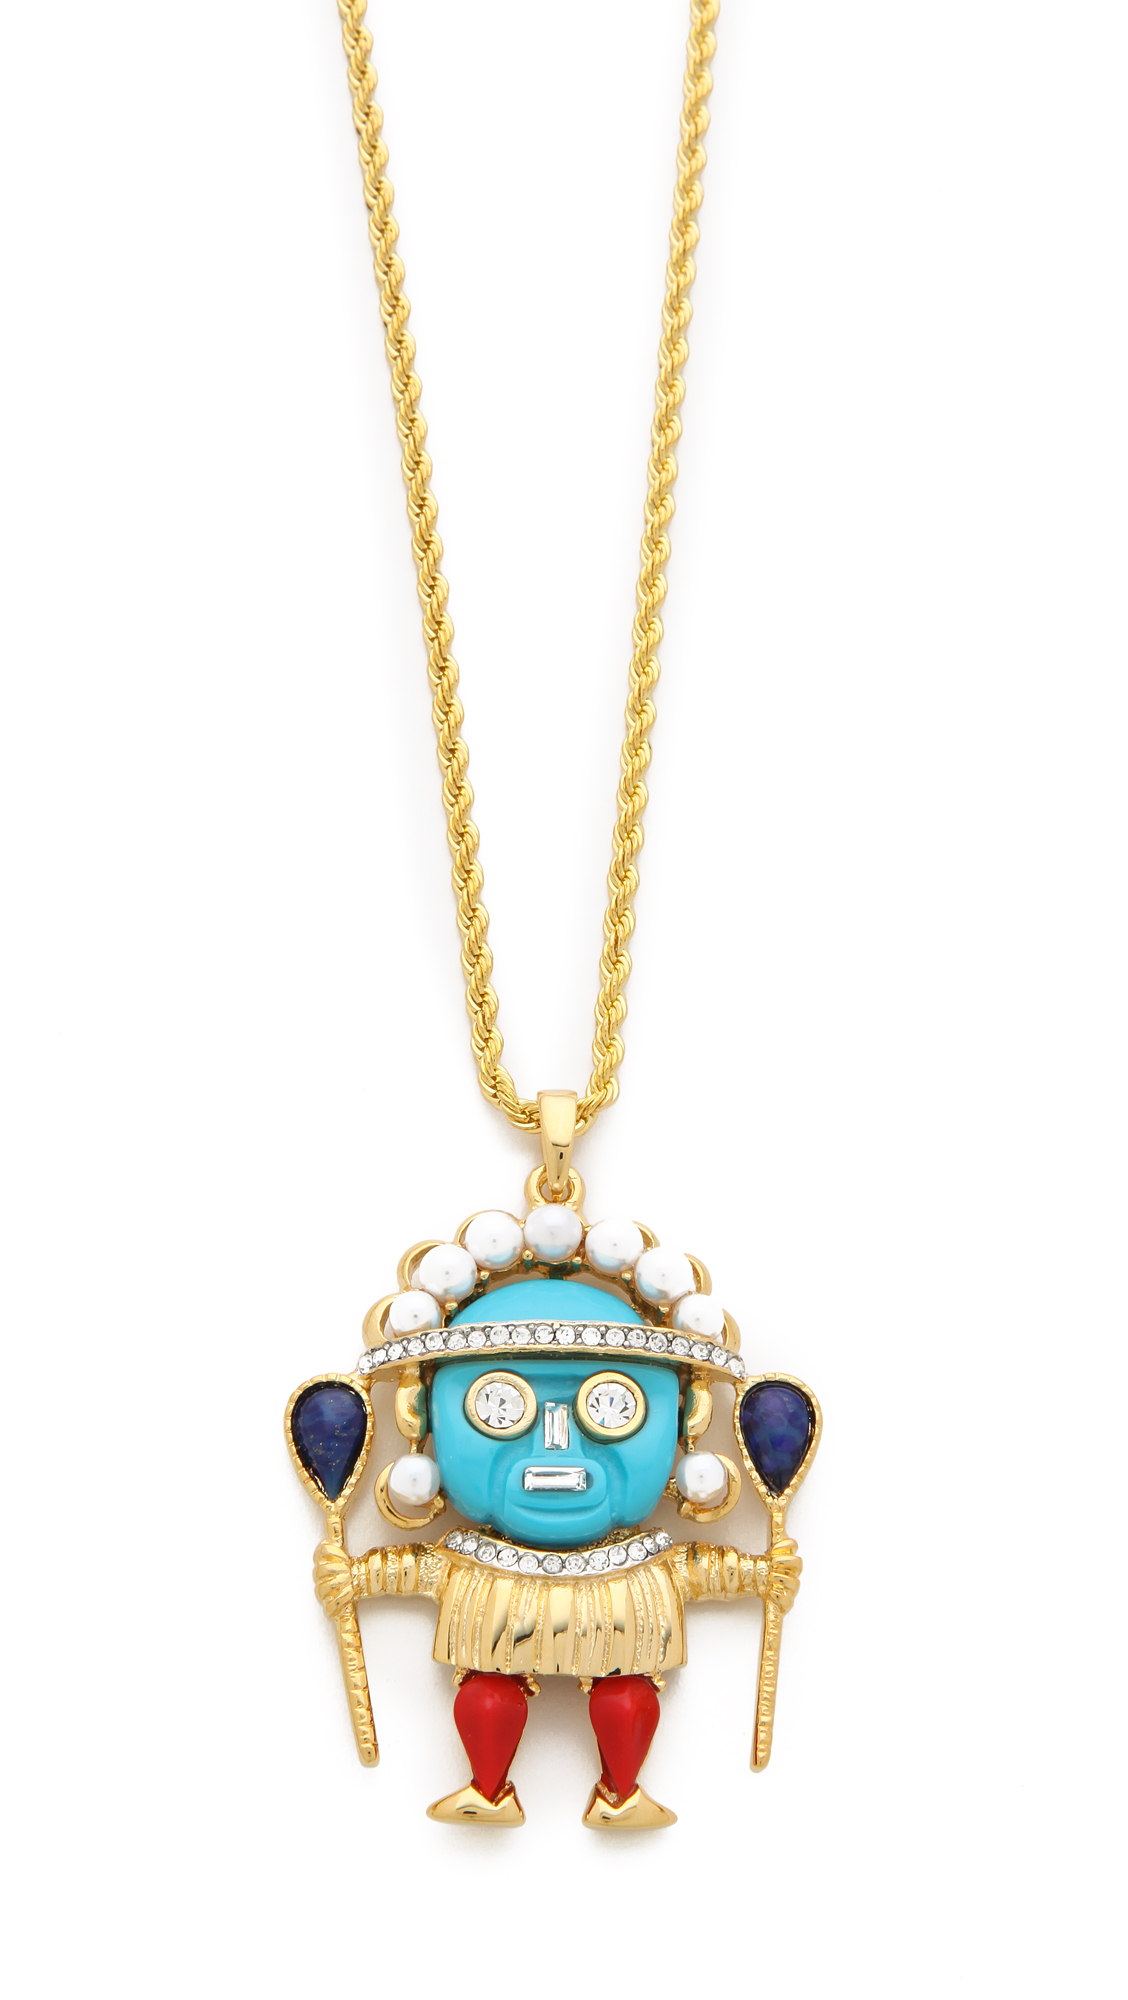 Lyst kenneth jay lane medicine man pendant necklace in metallic gallery aloadofball Image collections